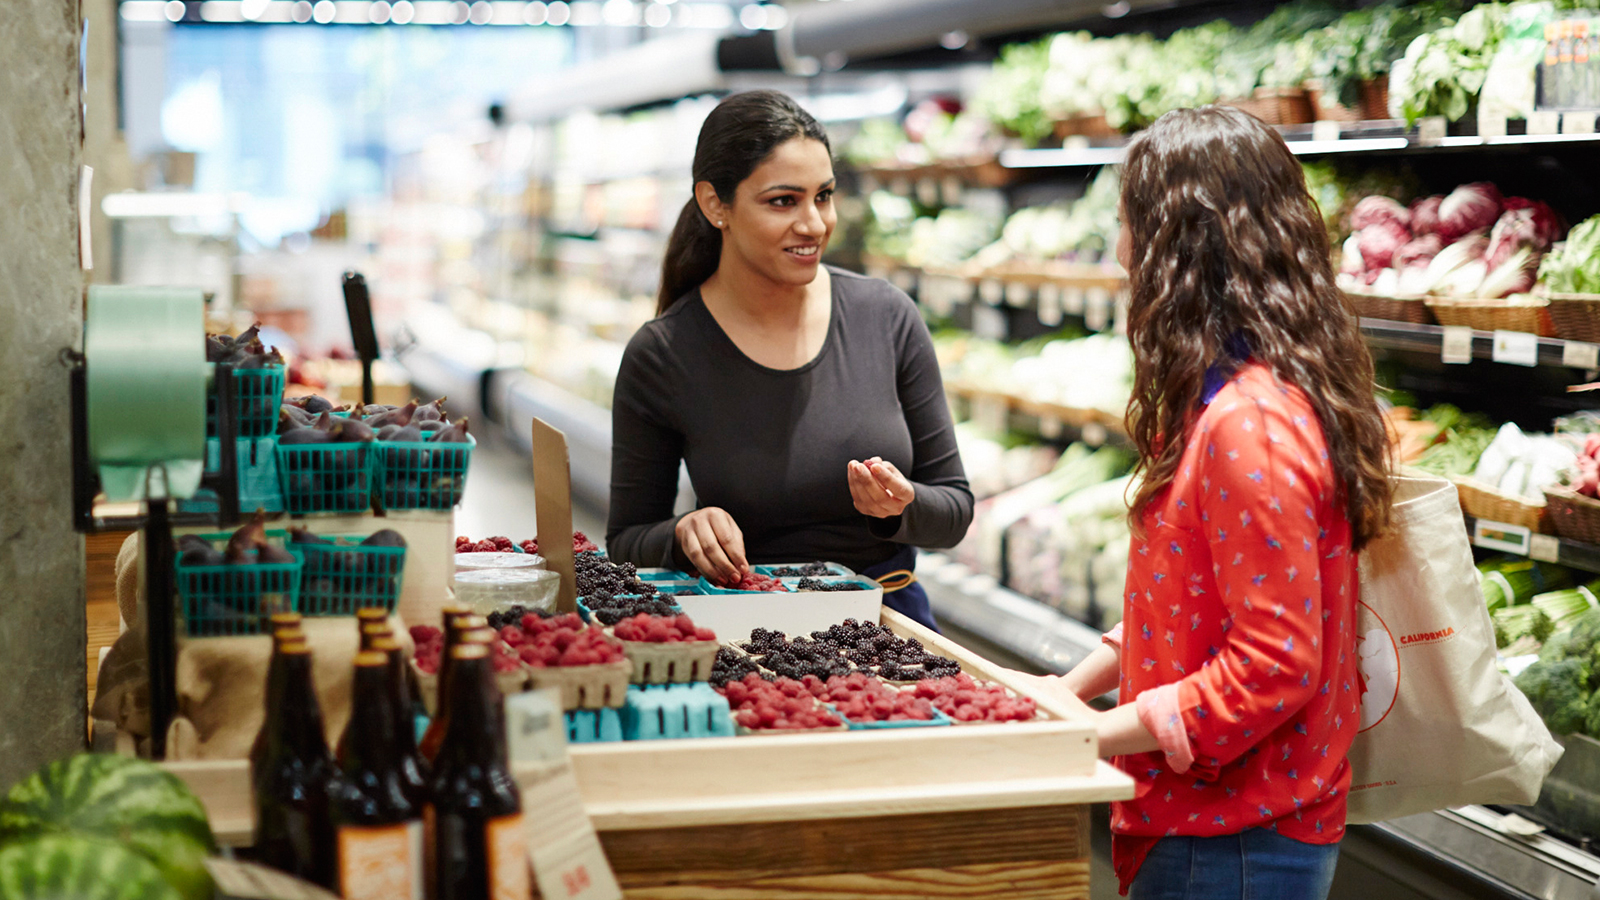 Women shopping in a retail grocery store.